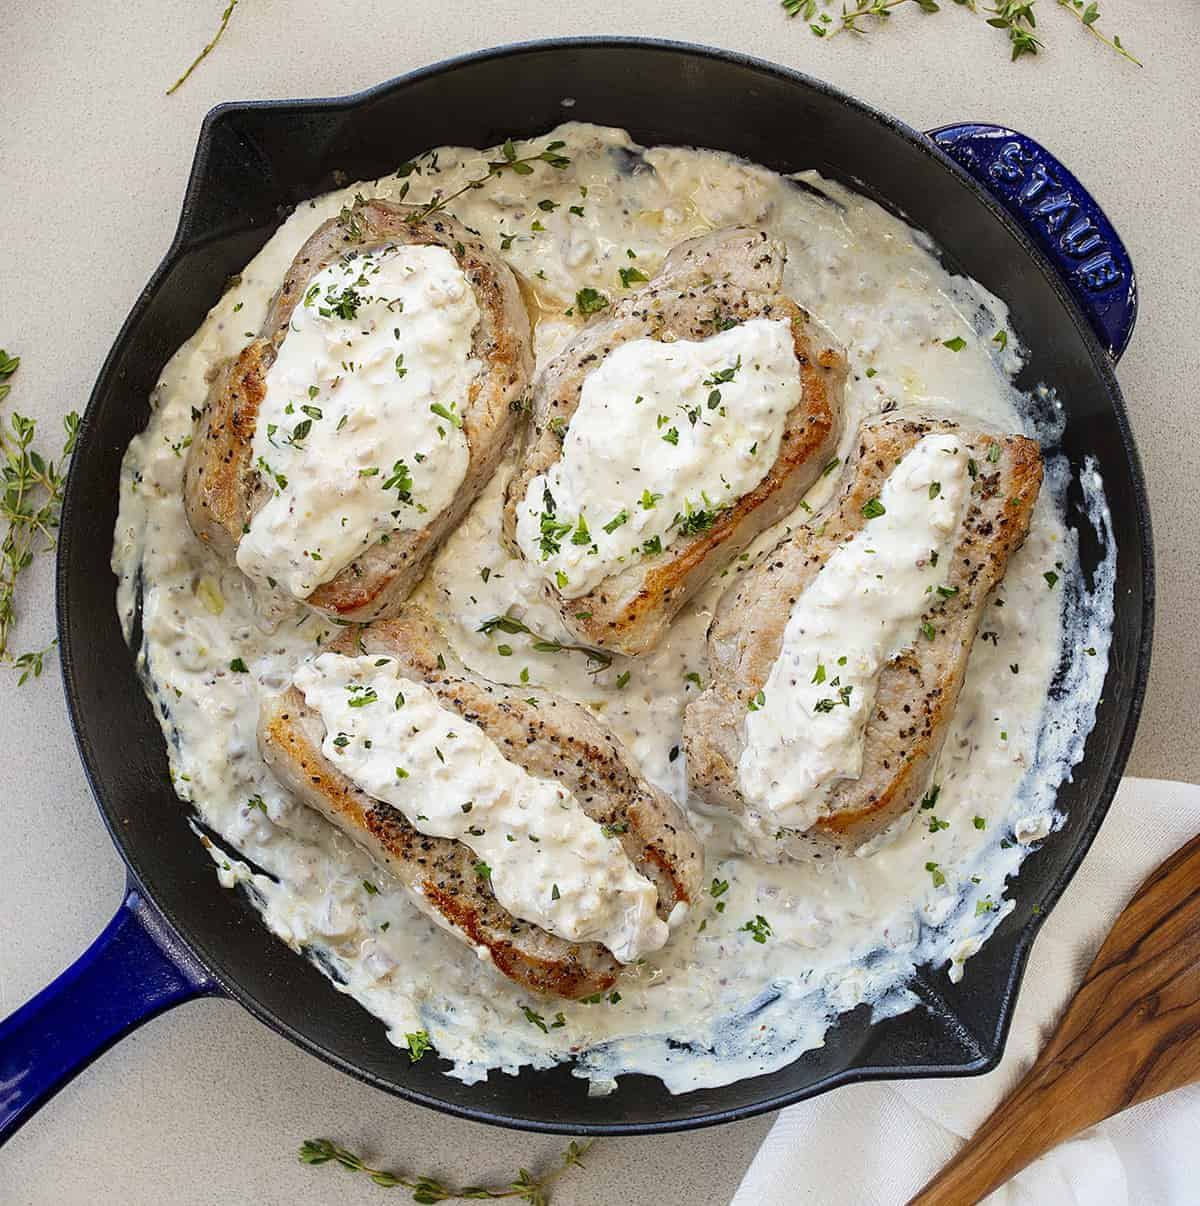 Cream Cheese Pork Chops in Blue Skillet Shot from Overhead